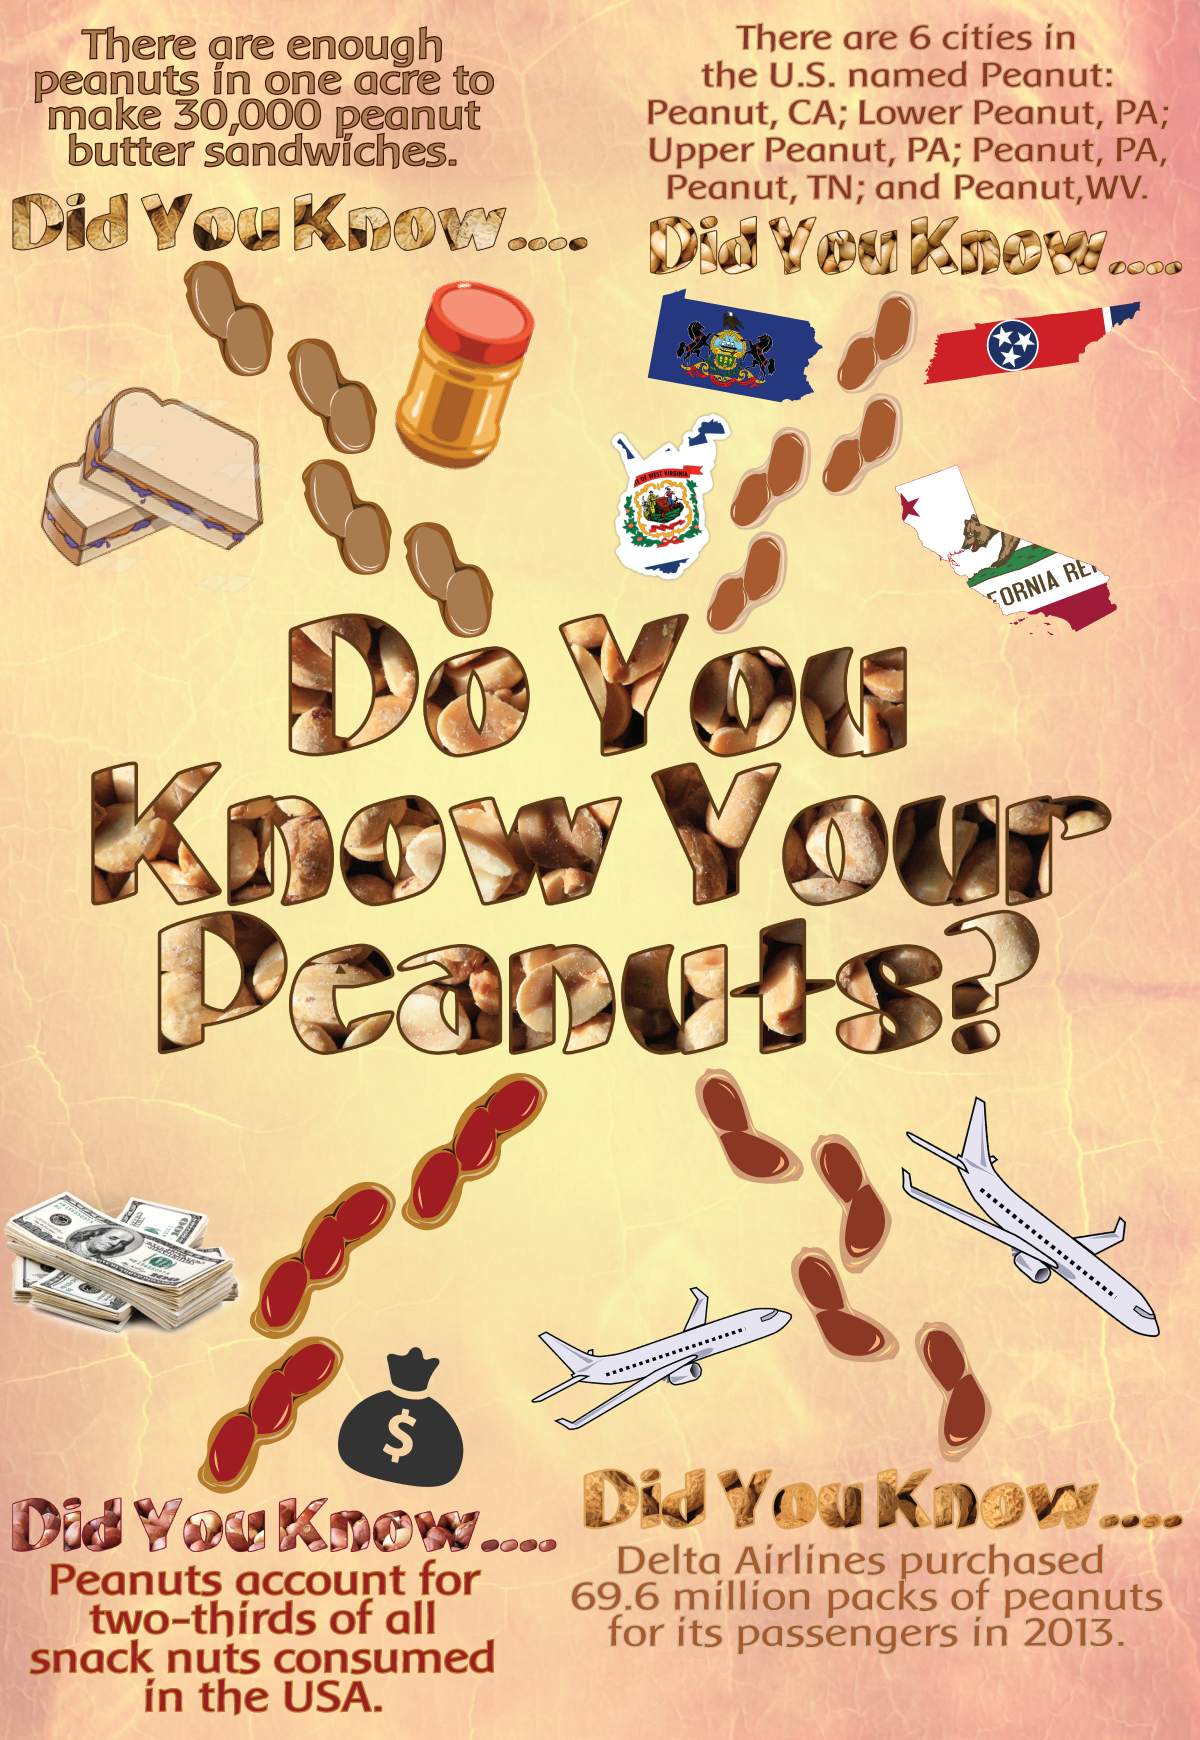 March is National Peanut Month! So grab a handful of your favorite type of peanut and join us as we honor this beloved nuts #Peanuts #PeanutMonth #Nuts4Nuts http://www.trulygoodfoods.com/blog/national-peanut-month